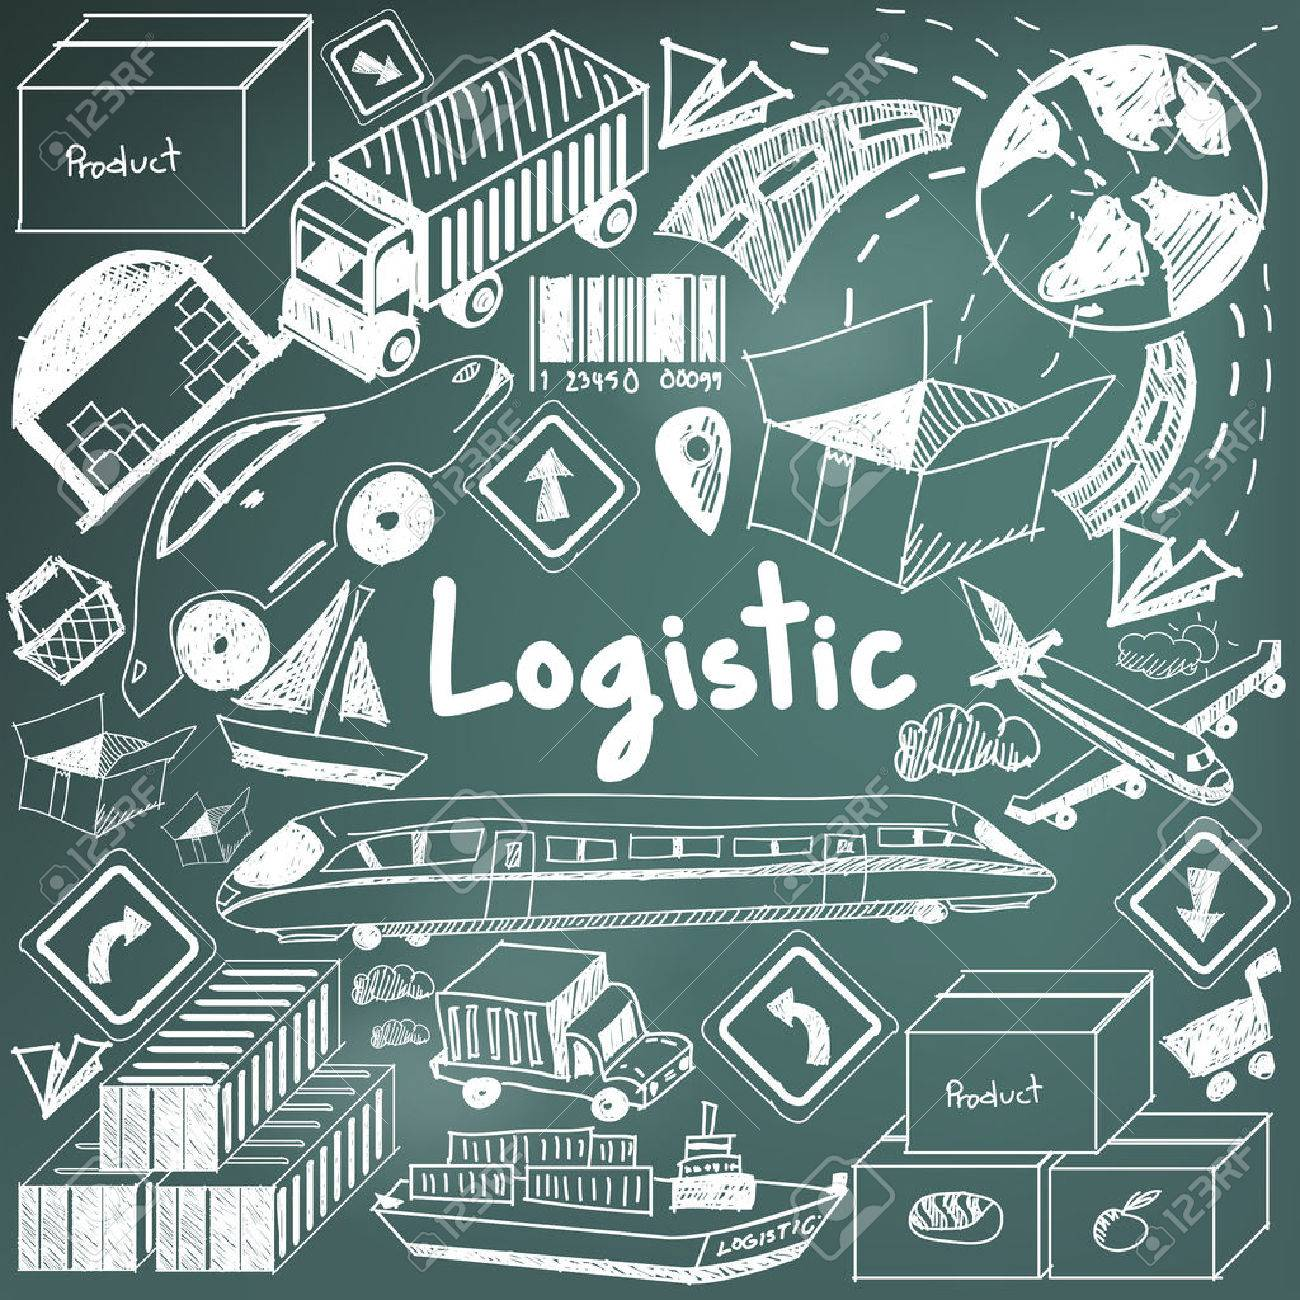 Logistic, transportation, and inventory management chalk handwriting doodle icon cargo object sign and symbol in blackboard background used for business presentation title or university education with header text, create by vector - 52658941